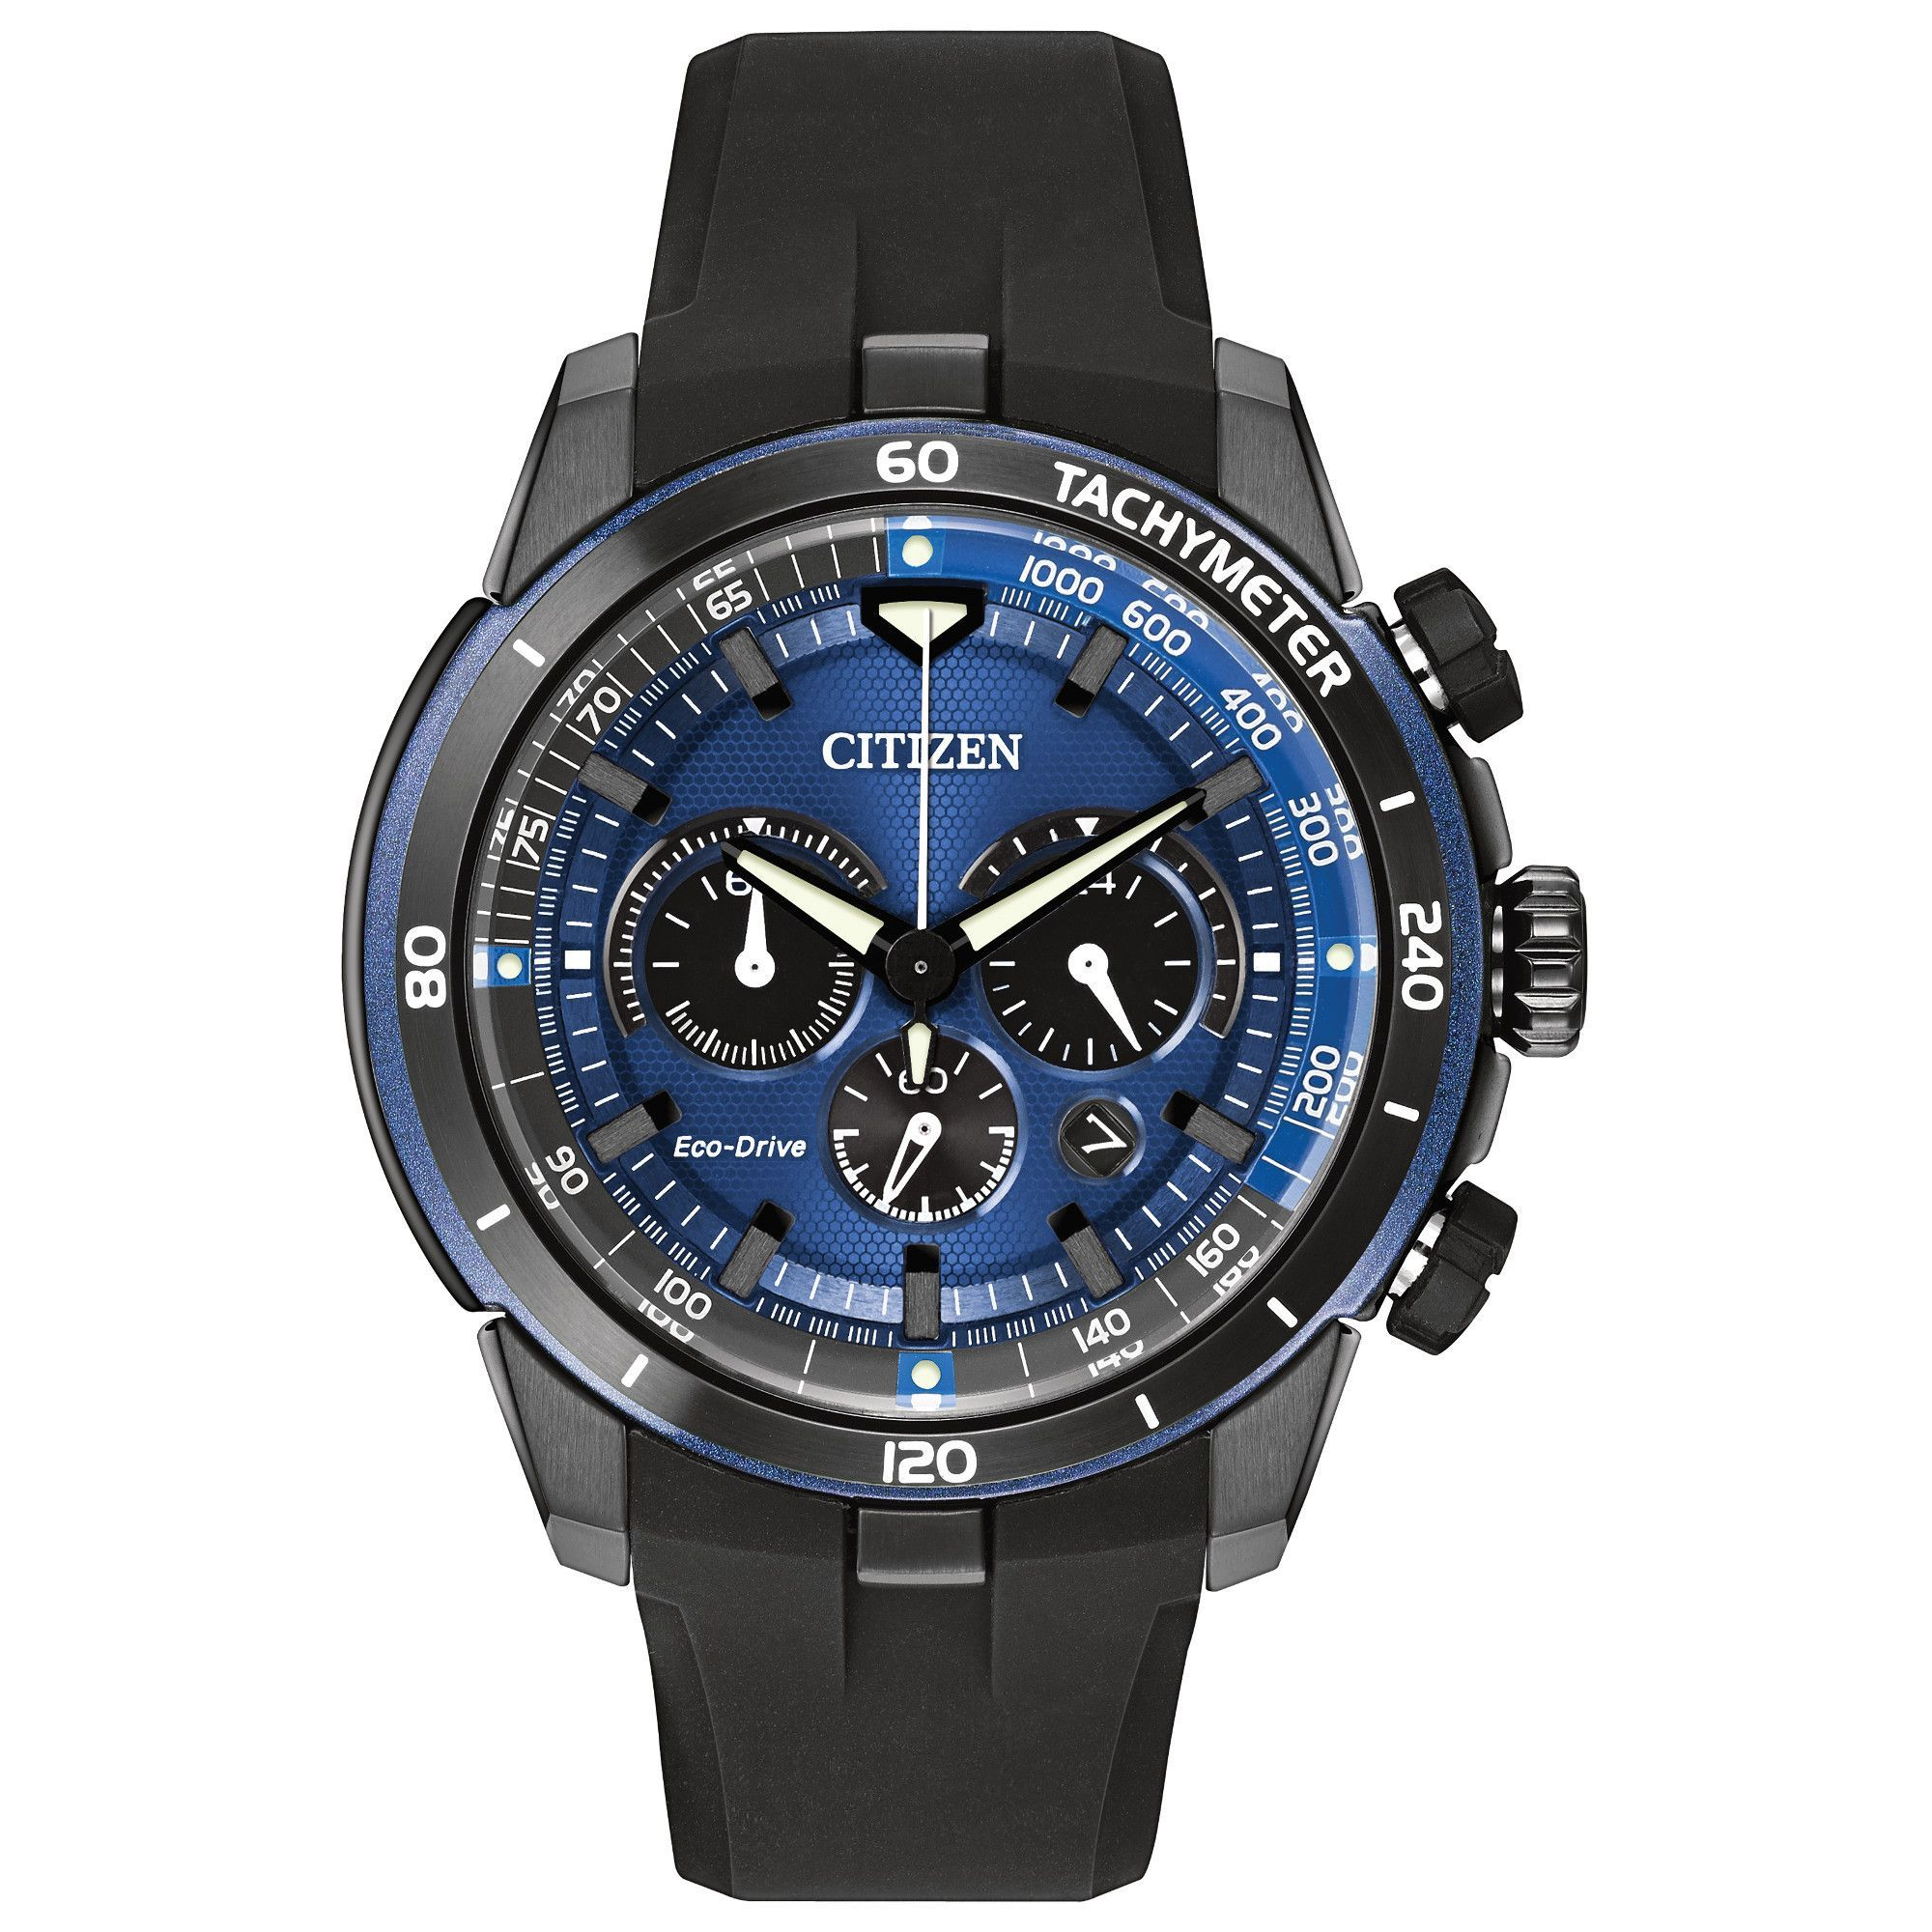 Ecosphere Mens watches citizen, Watches for men, Mens